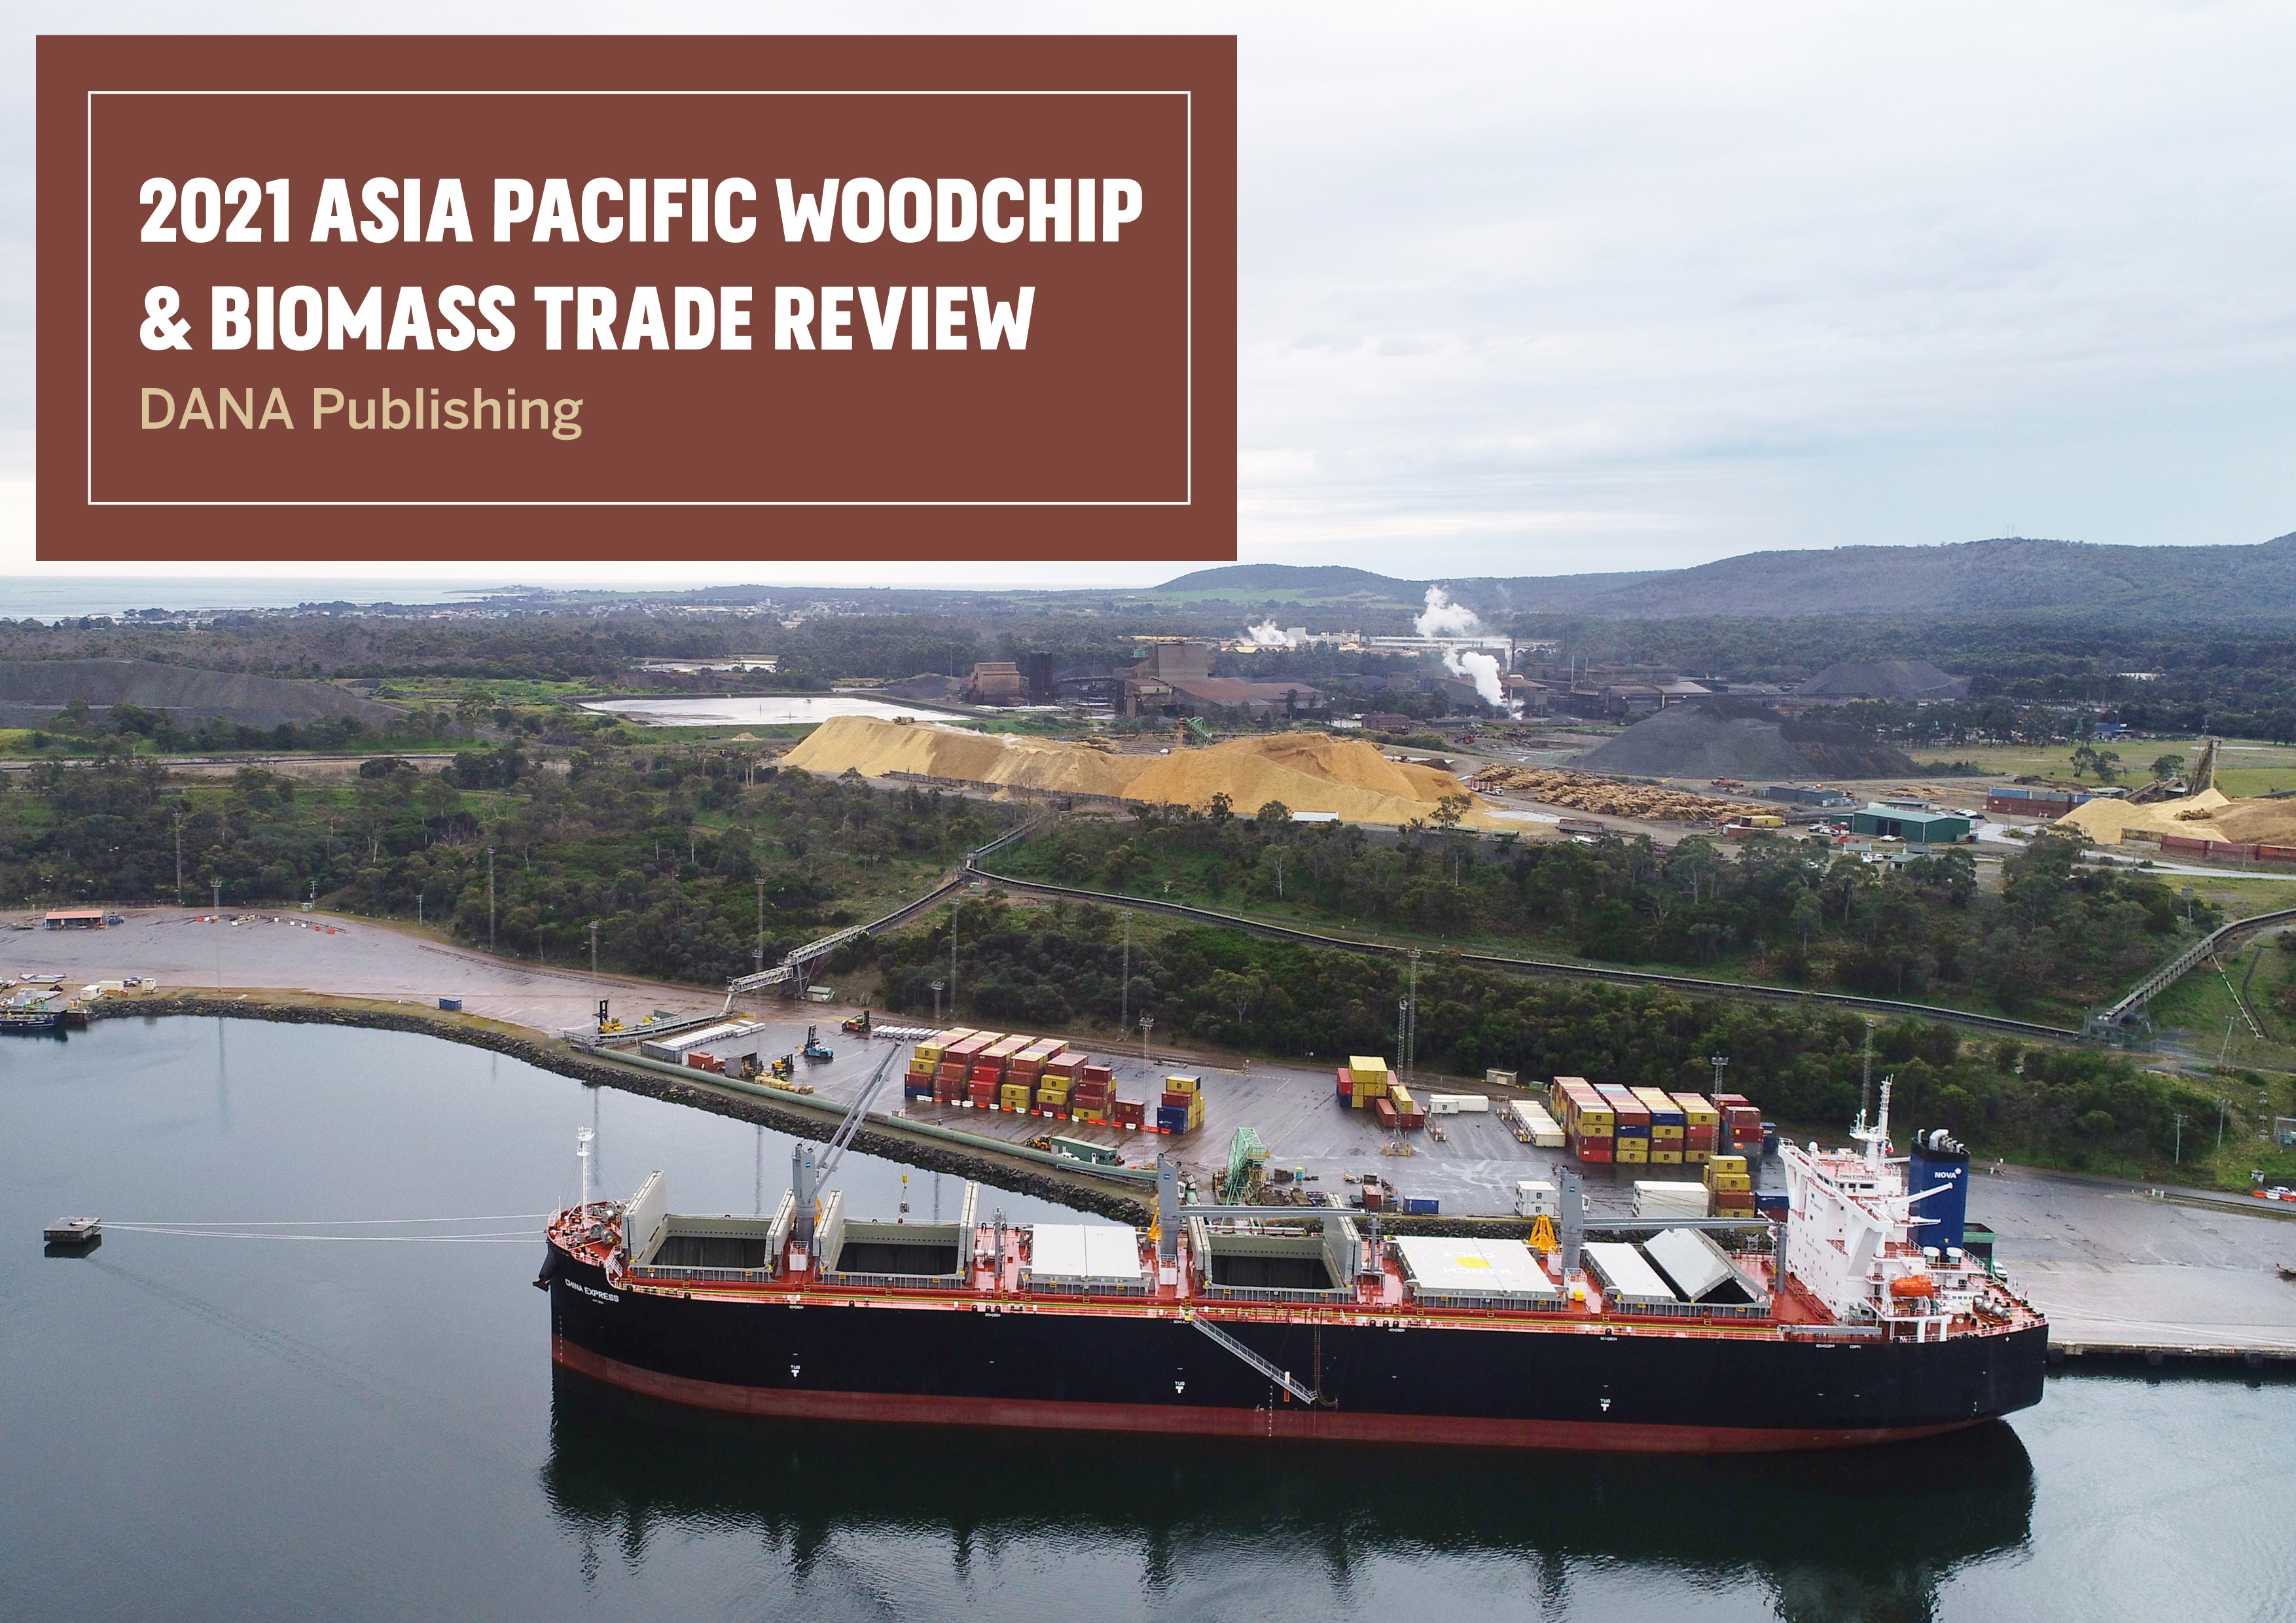 Cover image 2021 Asia Pacific WoodChip & biomass Trade Review